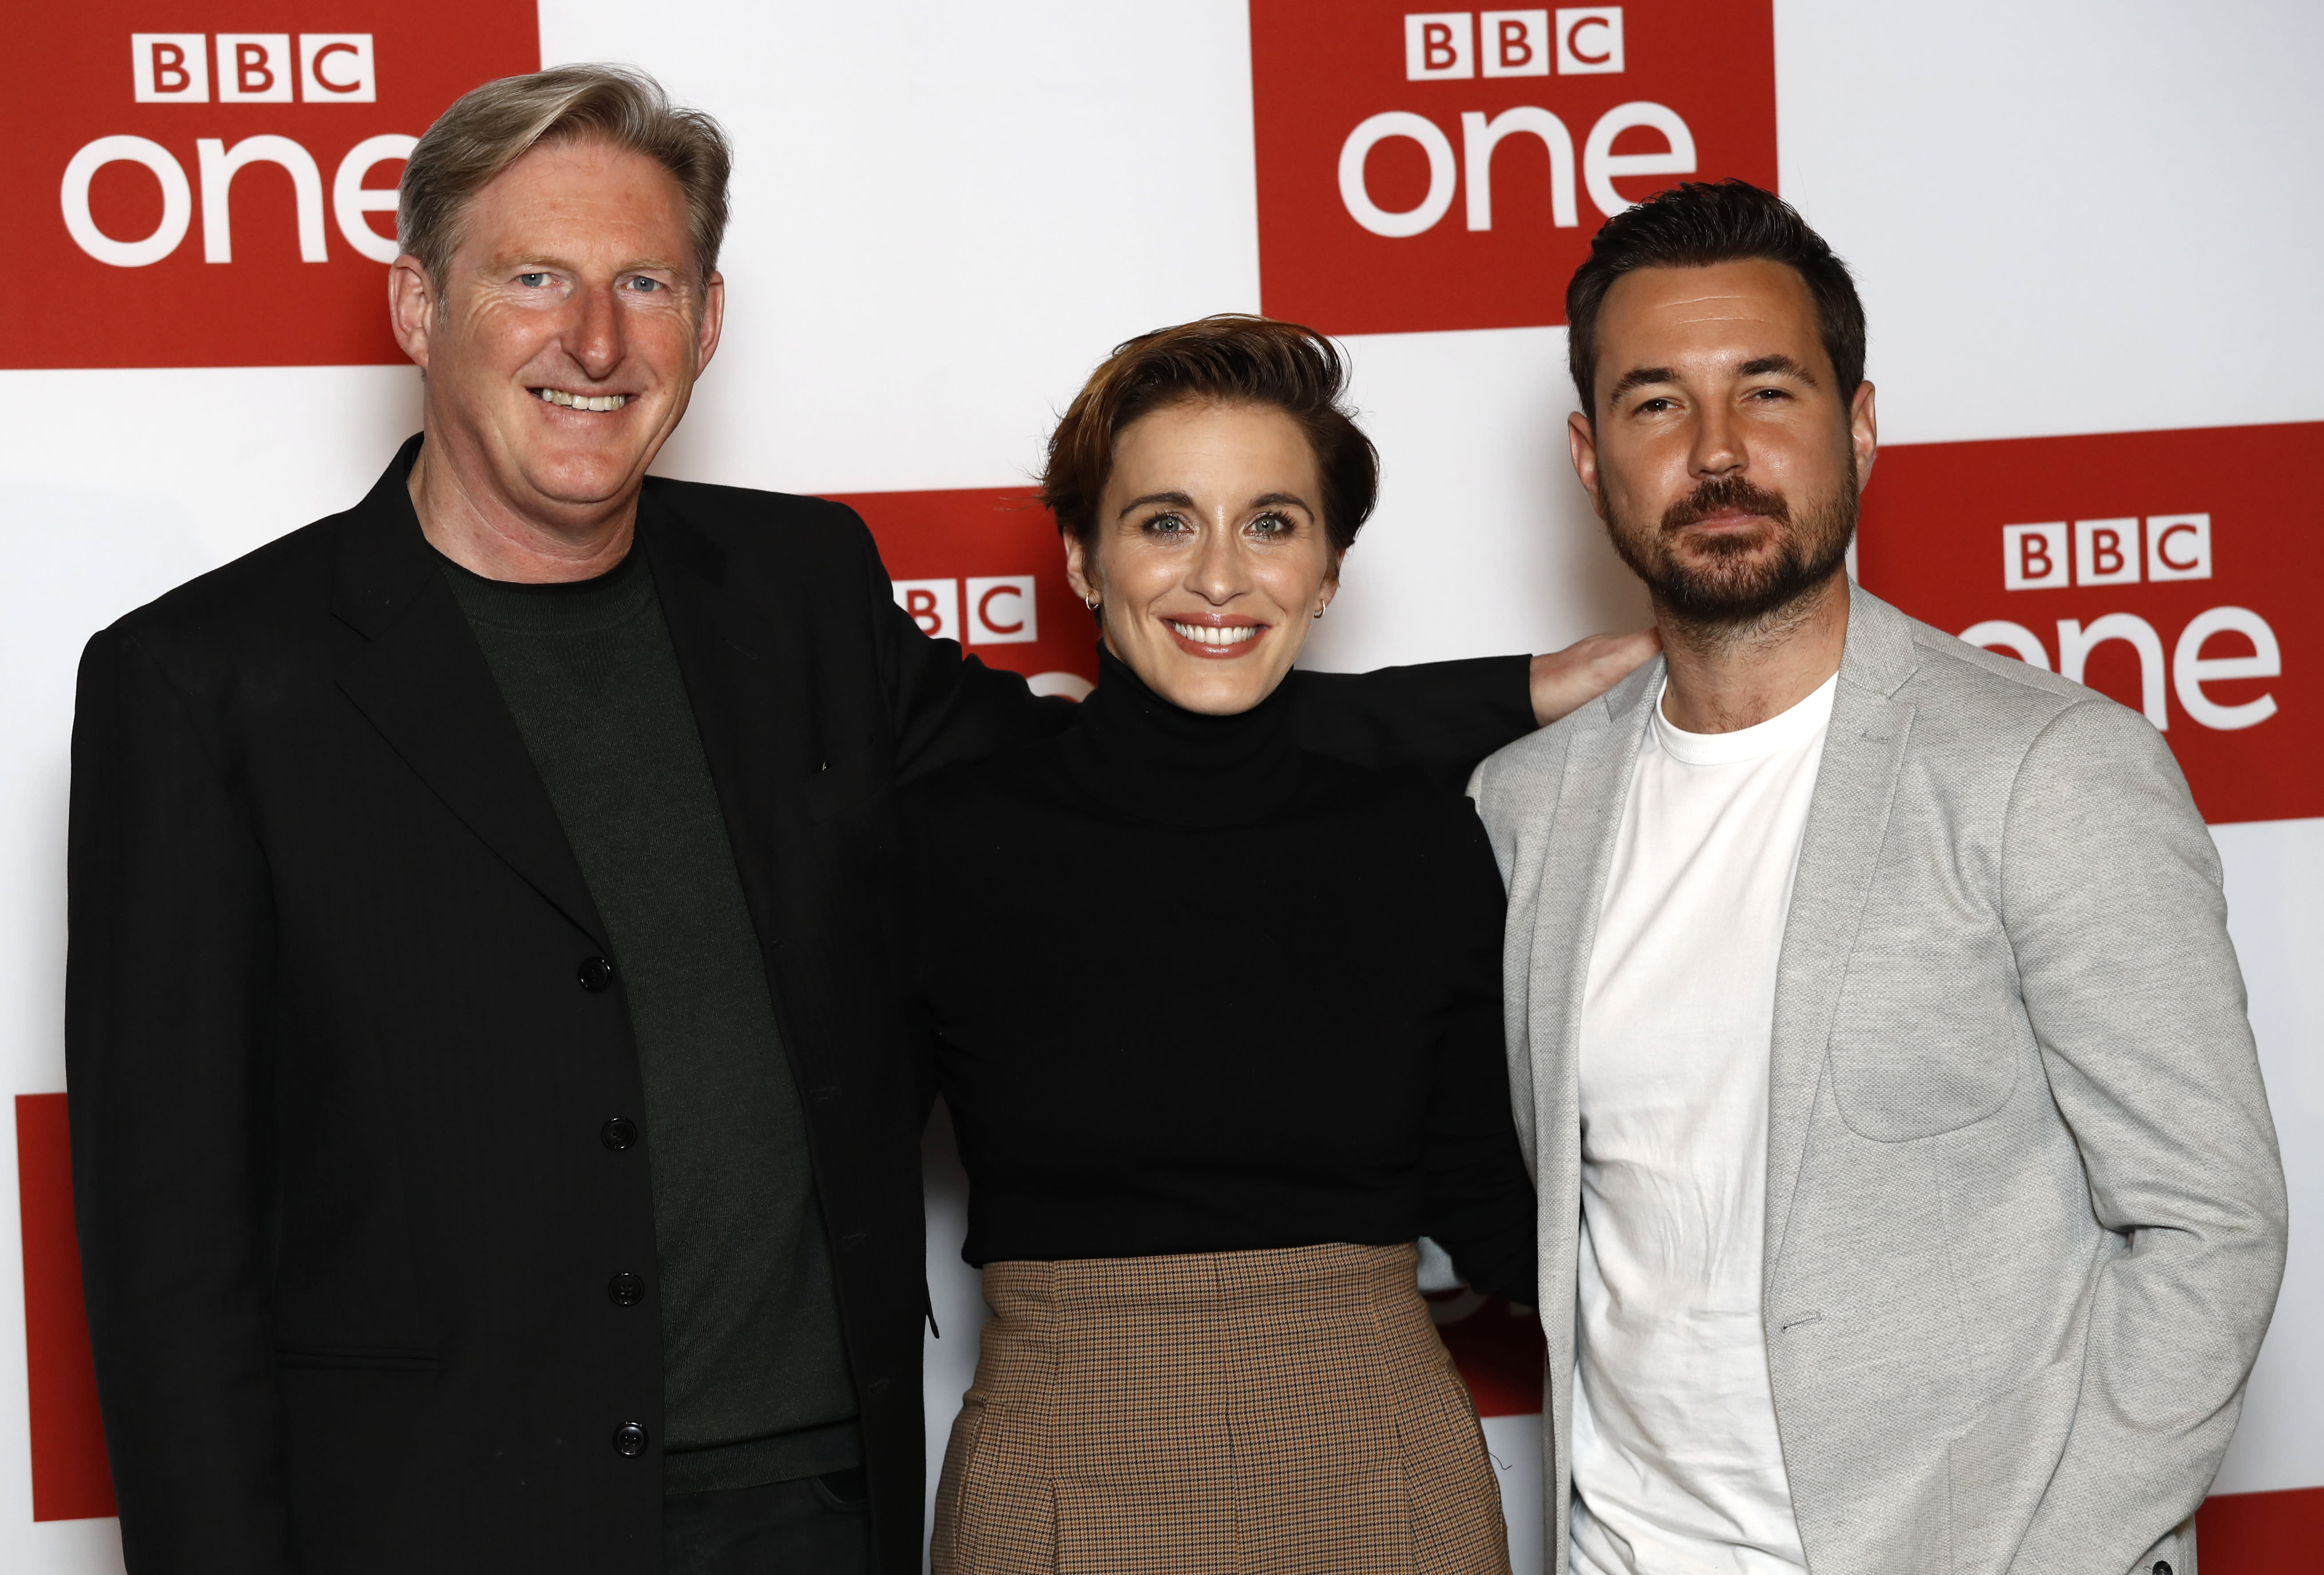 """LONDON, ENGLAND - MARCH 18: Adrian Dunbar, Vicky McClure and Martin Compston attend the """"Line of Duty"""" photocall at BFI Southbank on March 18, 2019 in London, England. (Photo by John Phillips/Getty Images)"""